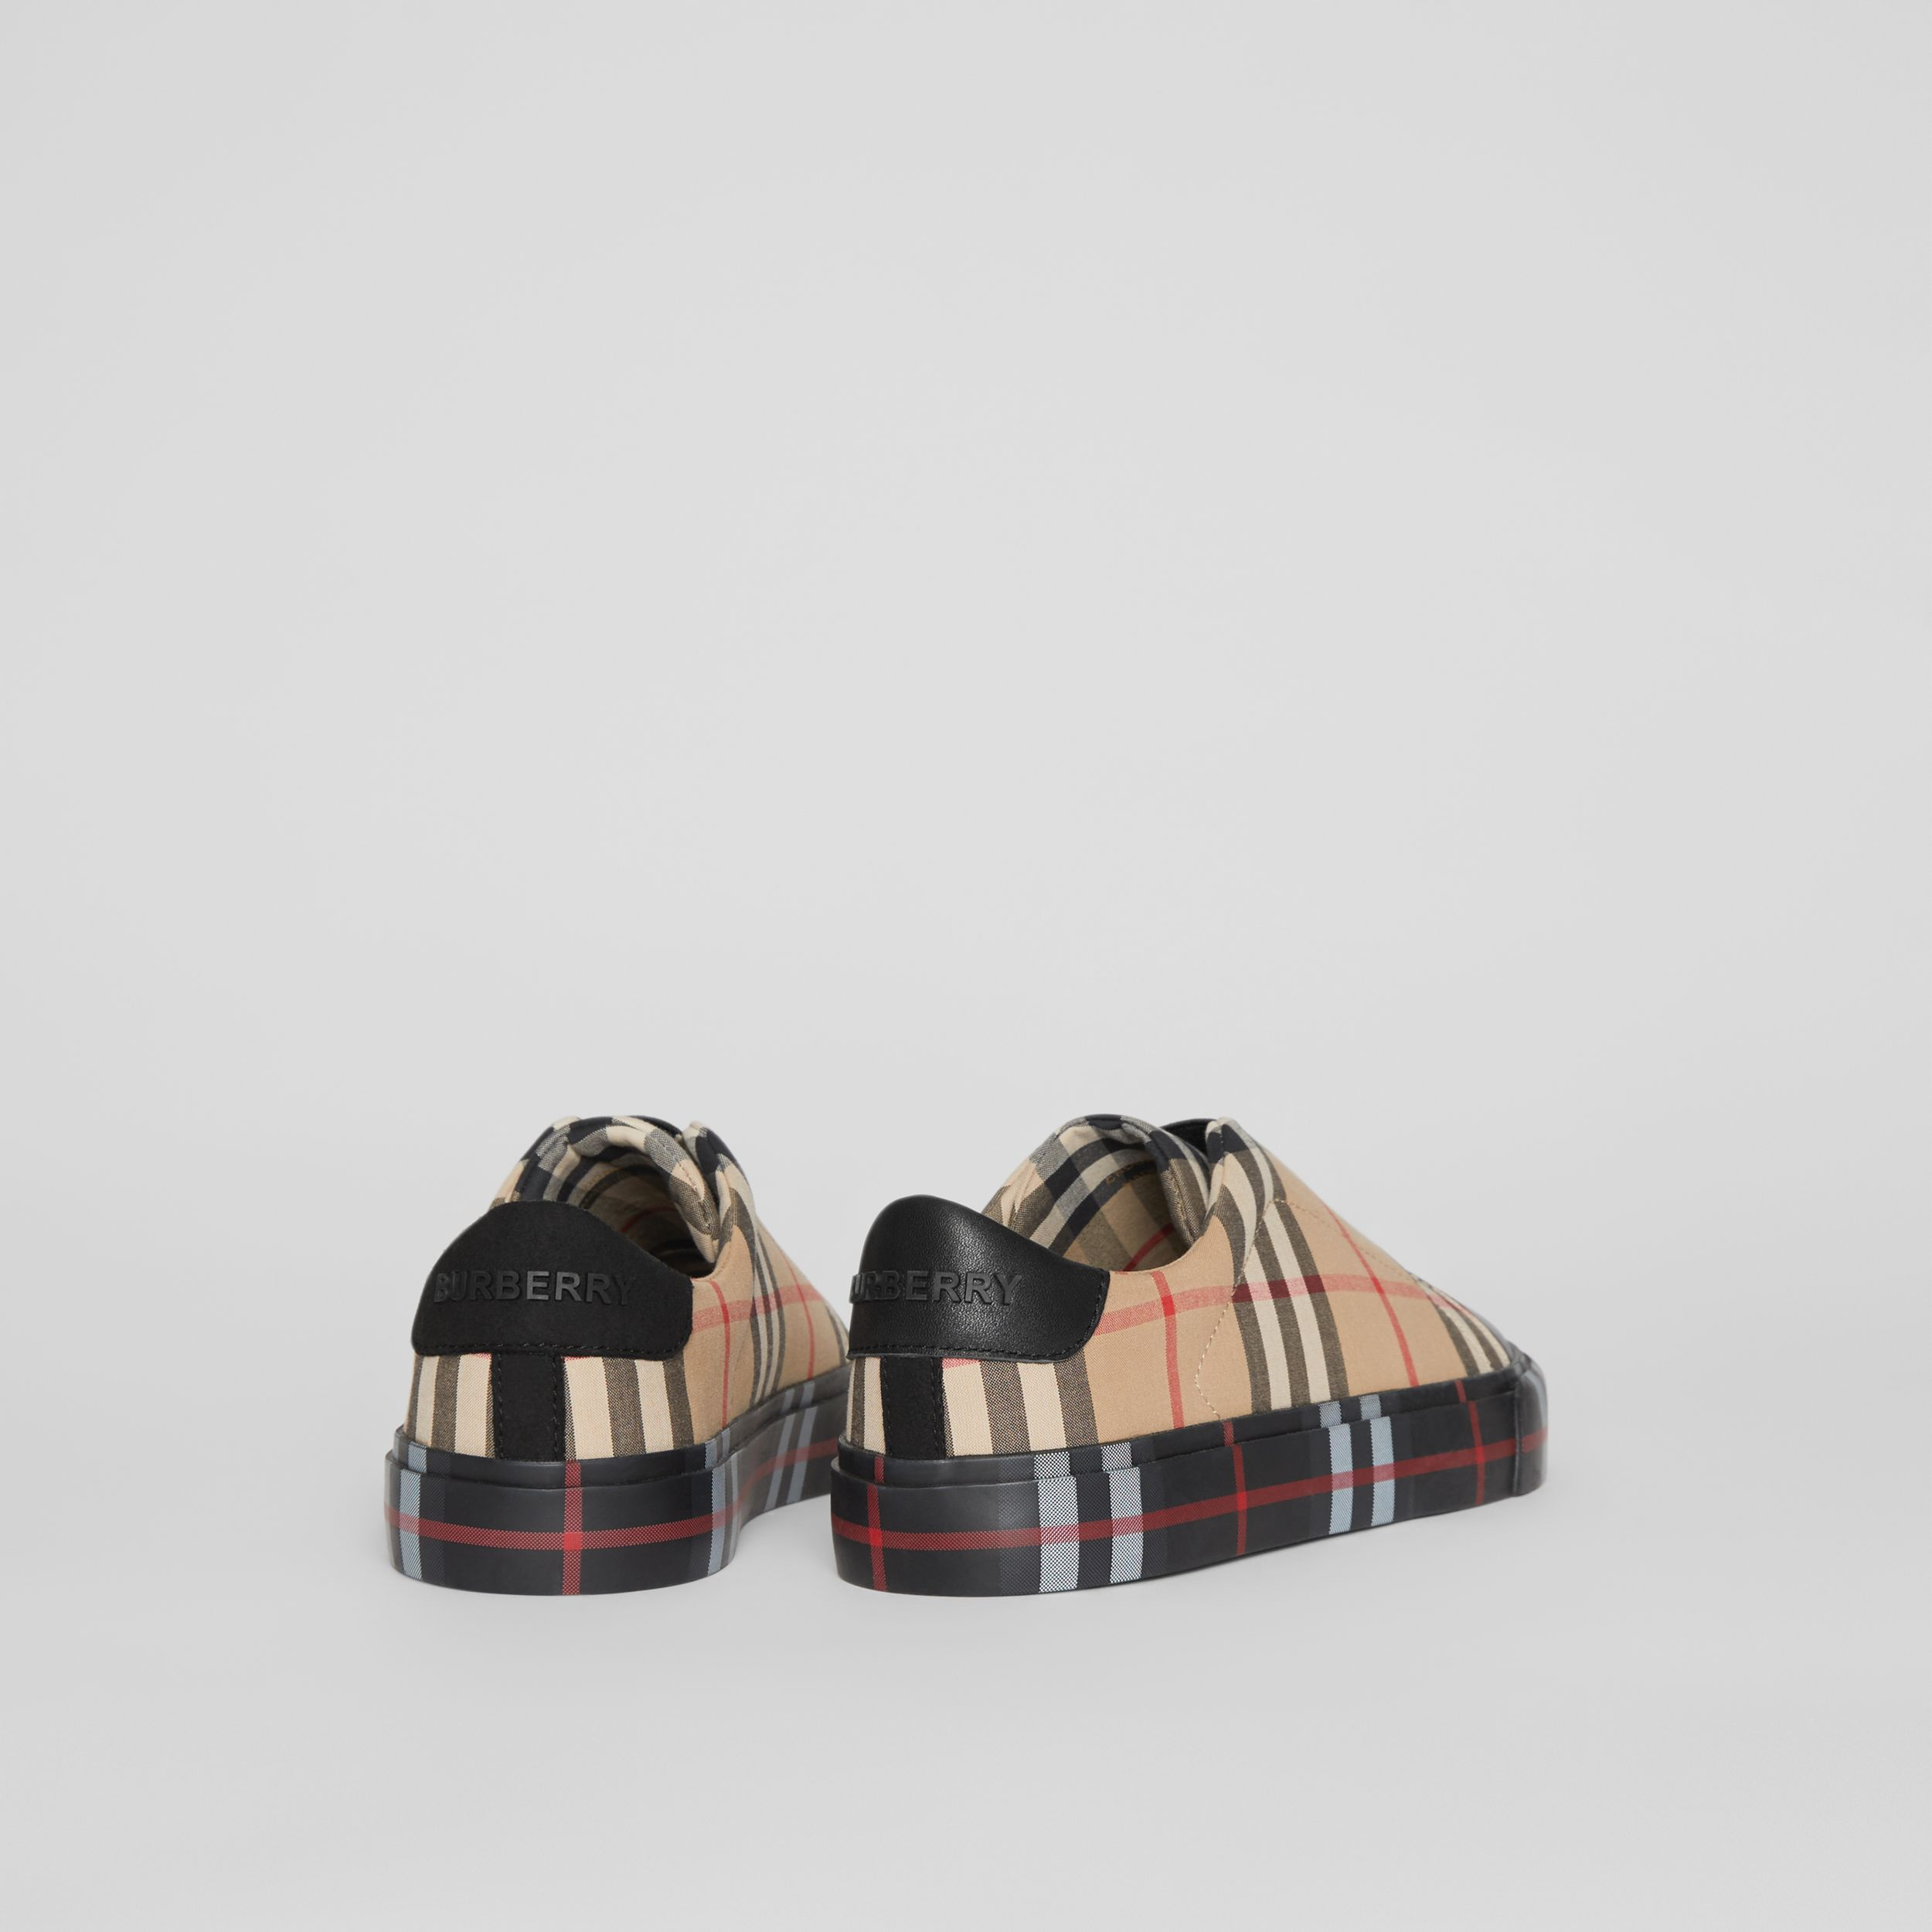 Contrast Check Slip-on Sneakers in Black/archive Beige - Children | Burberry - 3